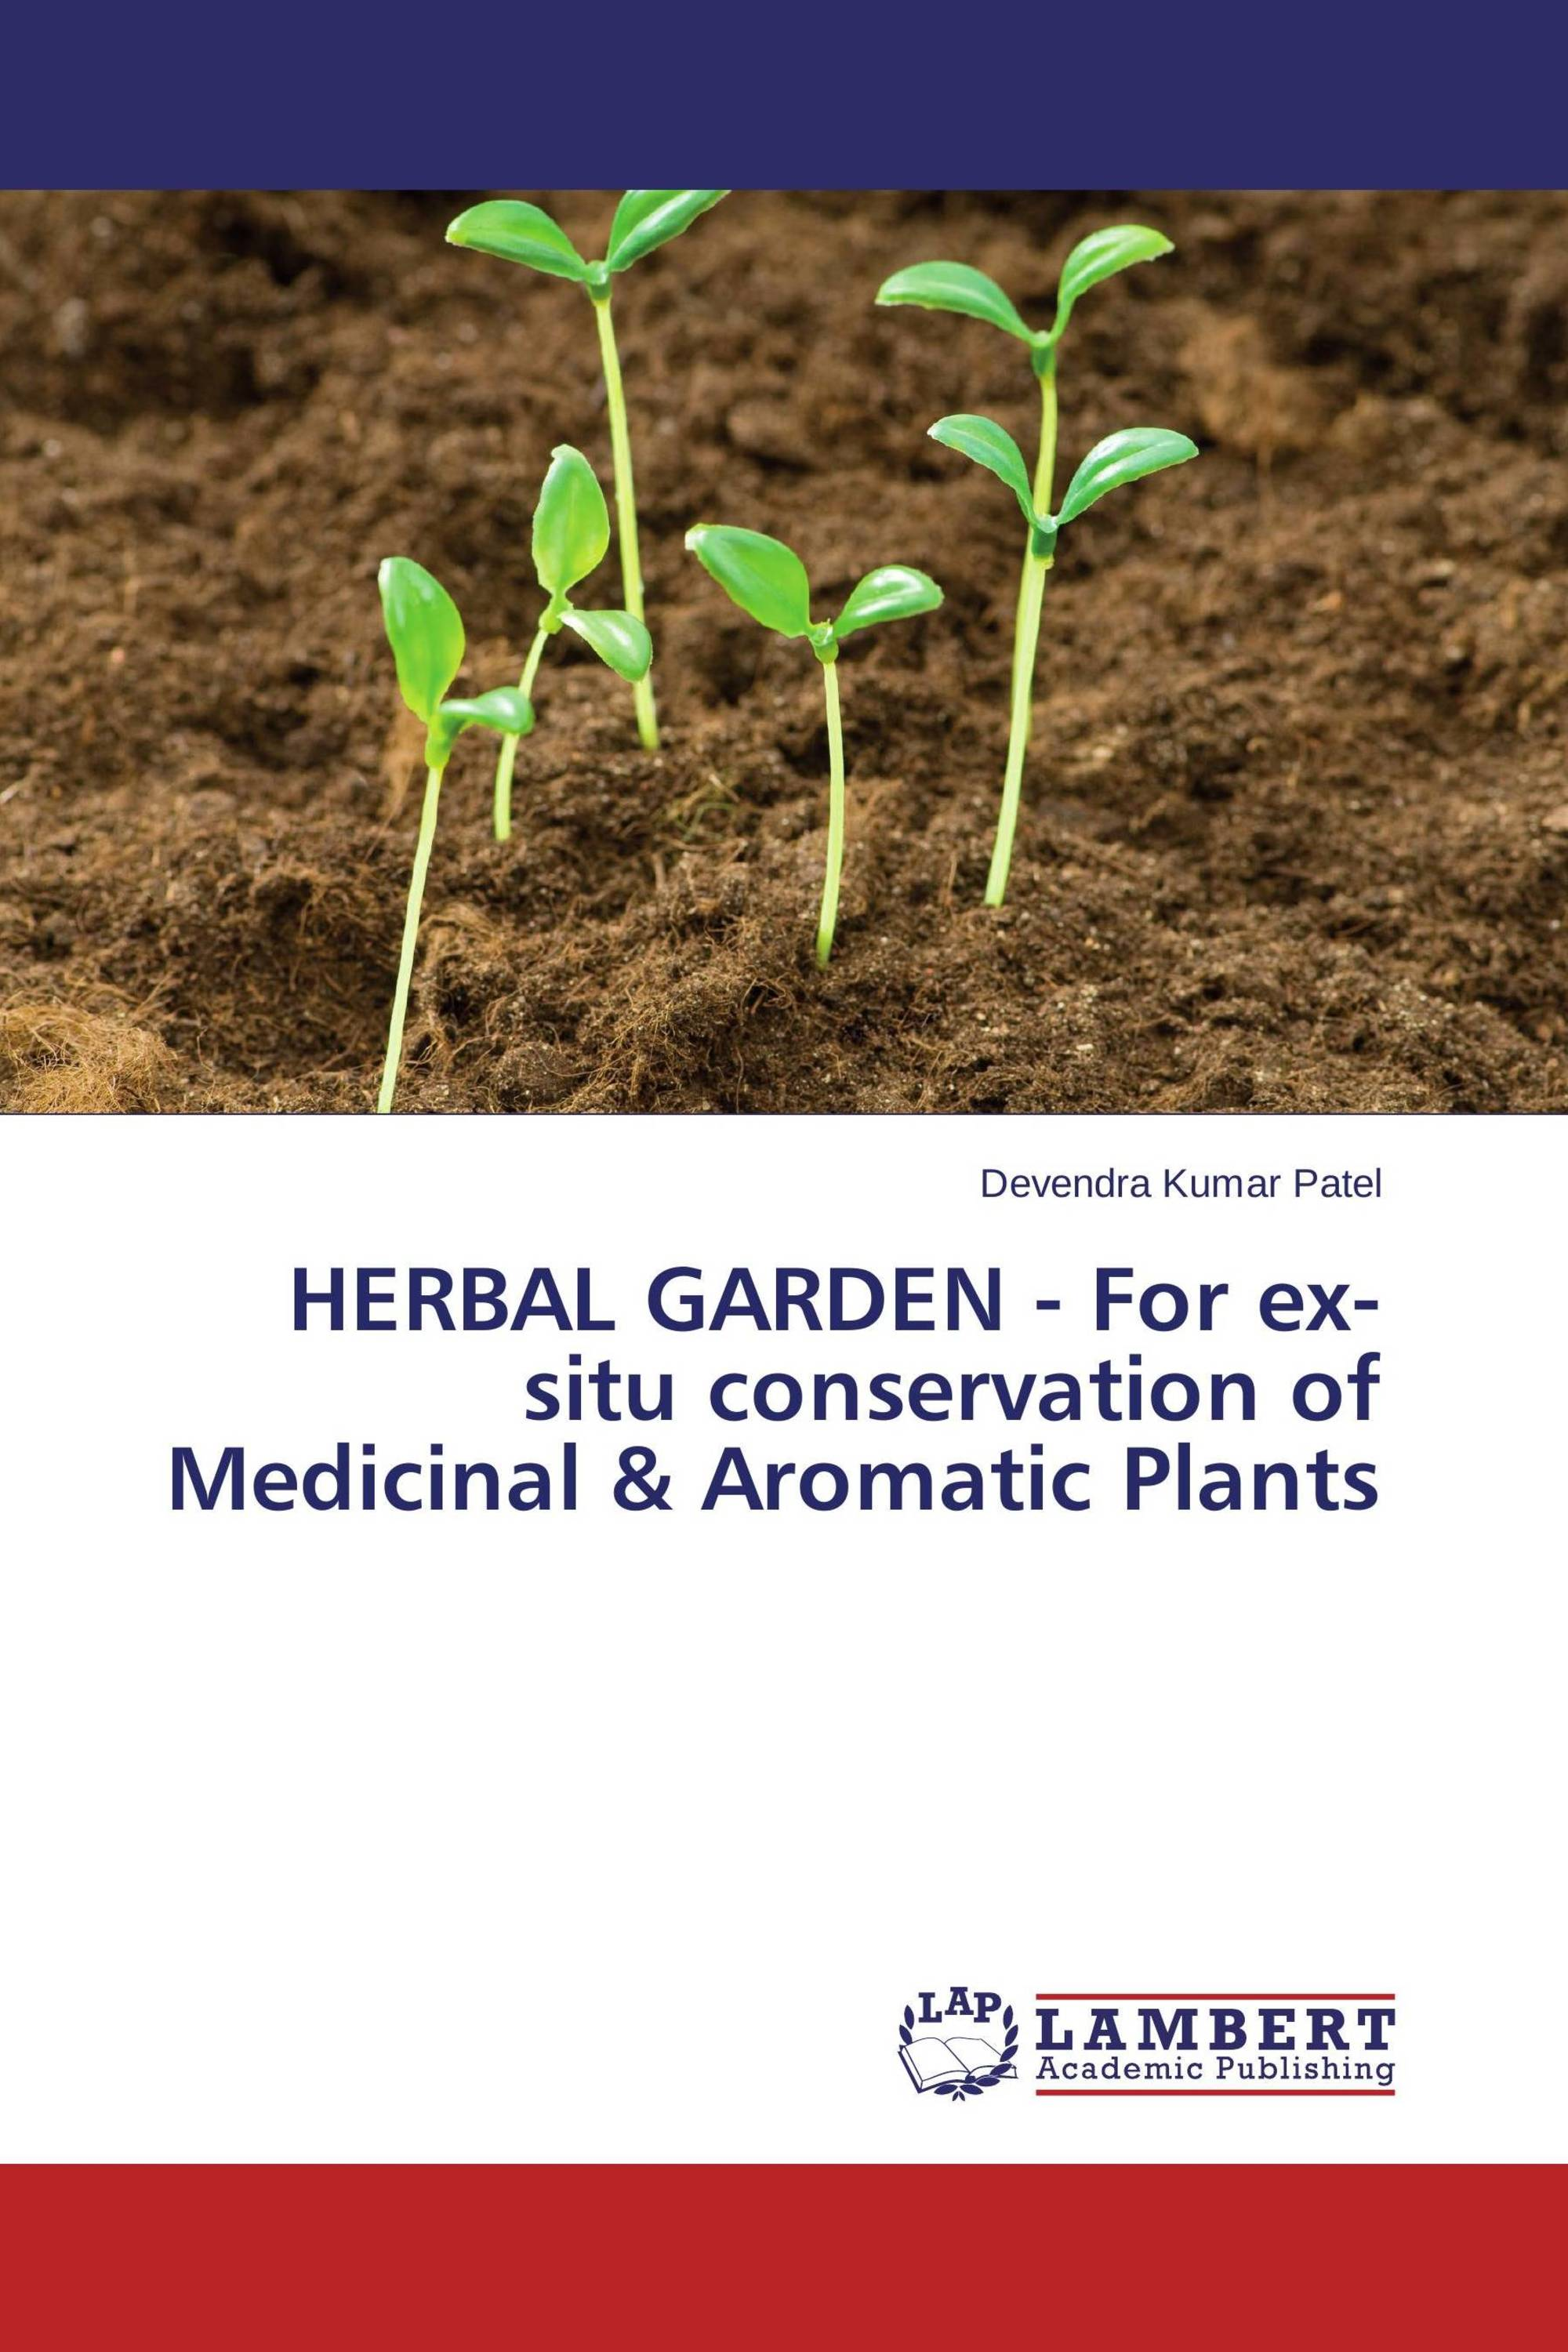 exsitu and insitu conservation of medicinal The conservation program is of two kinds namely exsitu and insitu conservation of medicinal plants in insitu conservation, about 54 medicinal plant conservation areas (mpca) have been established with in the forest areas of southern india.